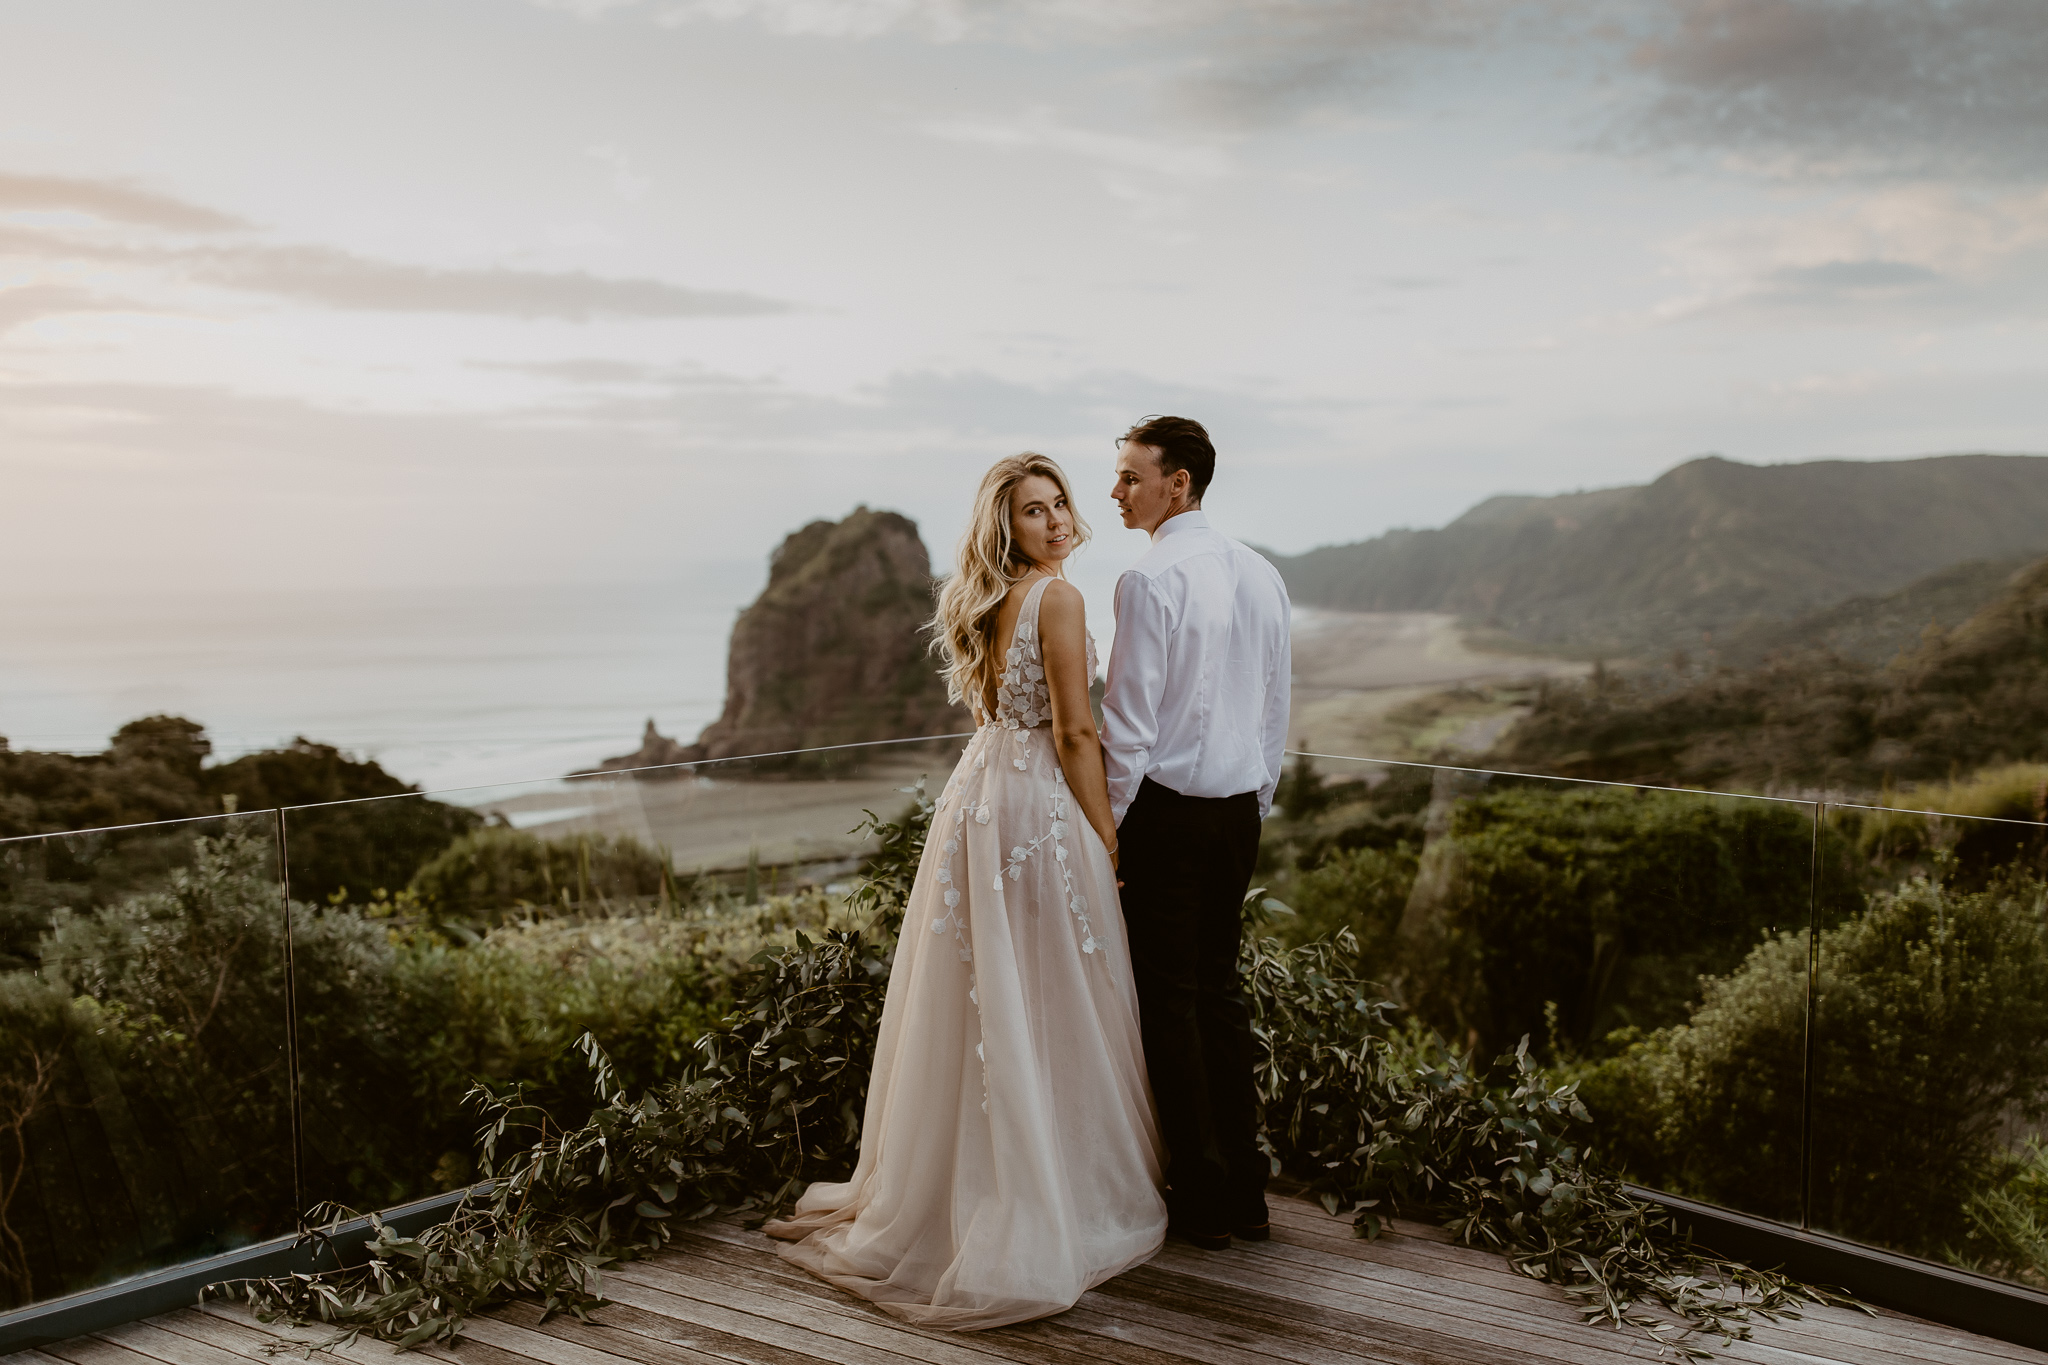 Categories: Weddings-Real Wedding: Petra & Dave - Photography by Wild & Grace